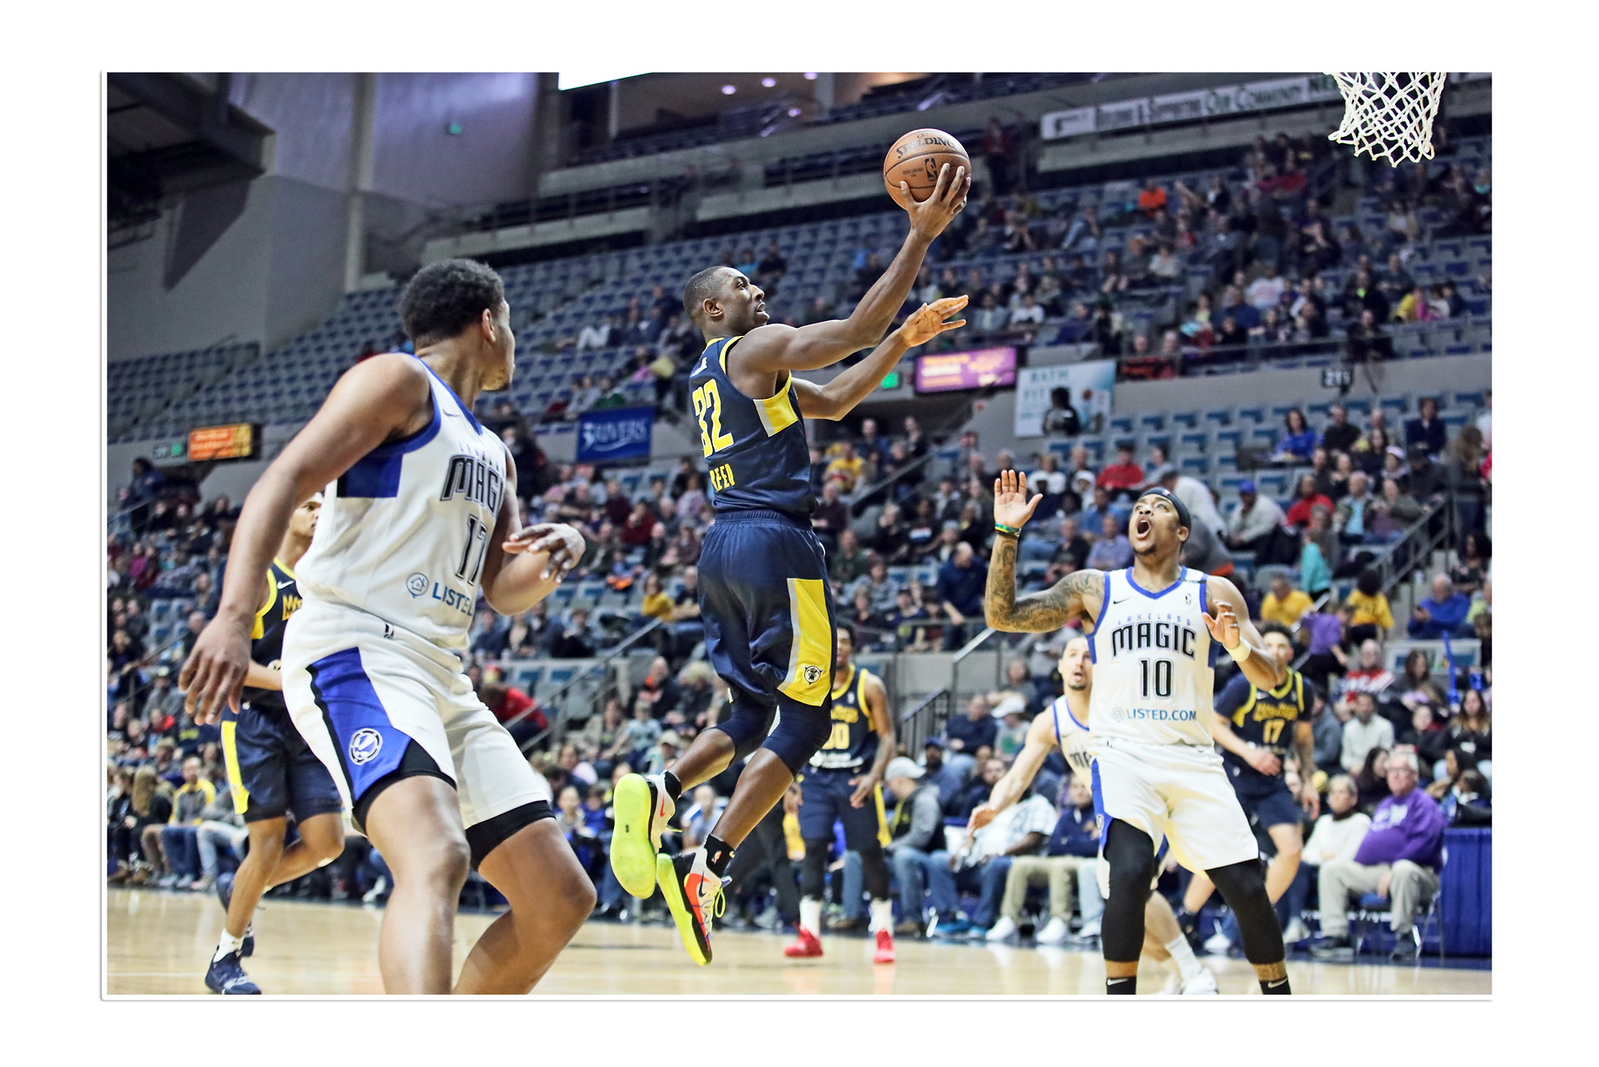 IMAGE: https://photos.smugmug.com/Sports-Events/Mad-Ants-Current-Season/Mar-8-2019/i-SgBdHX6/0/58eaa9a5/X3/FX8A9324a-X3.jpg